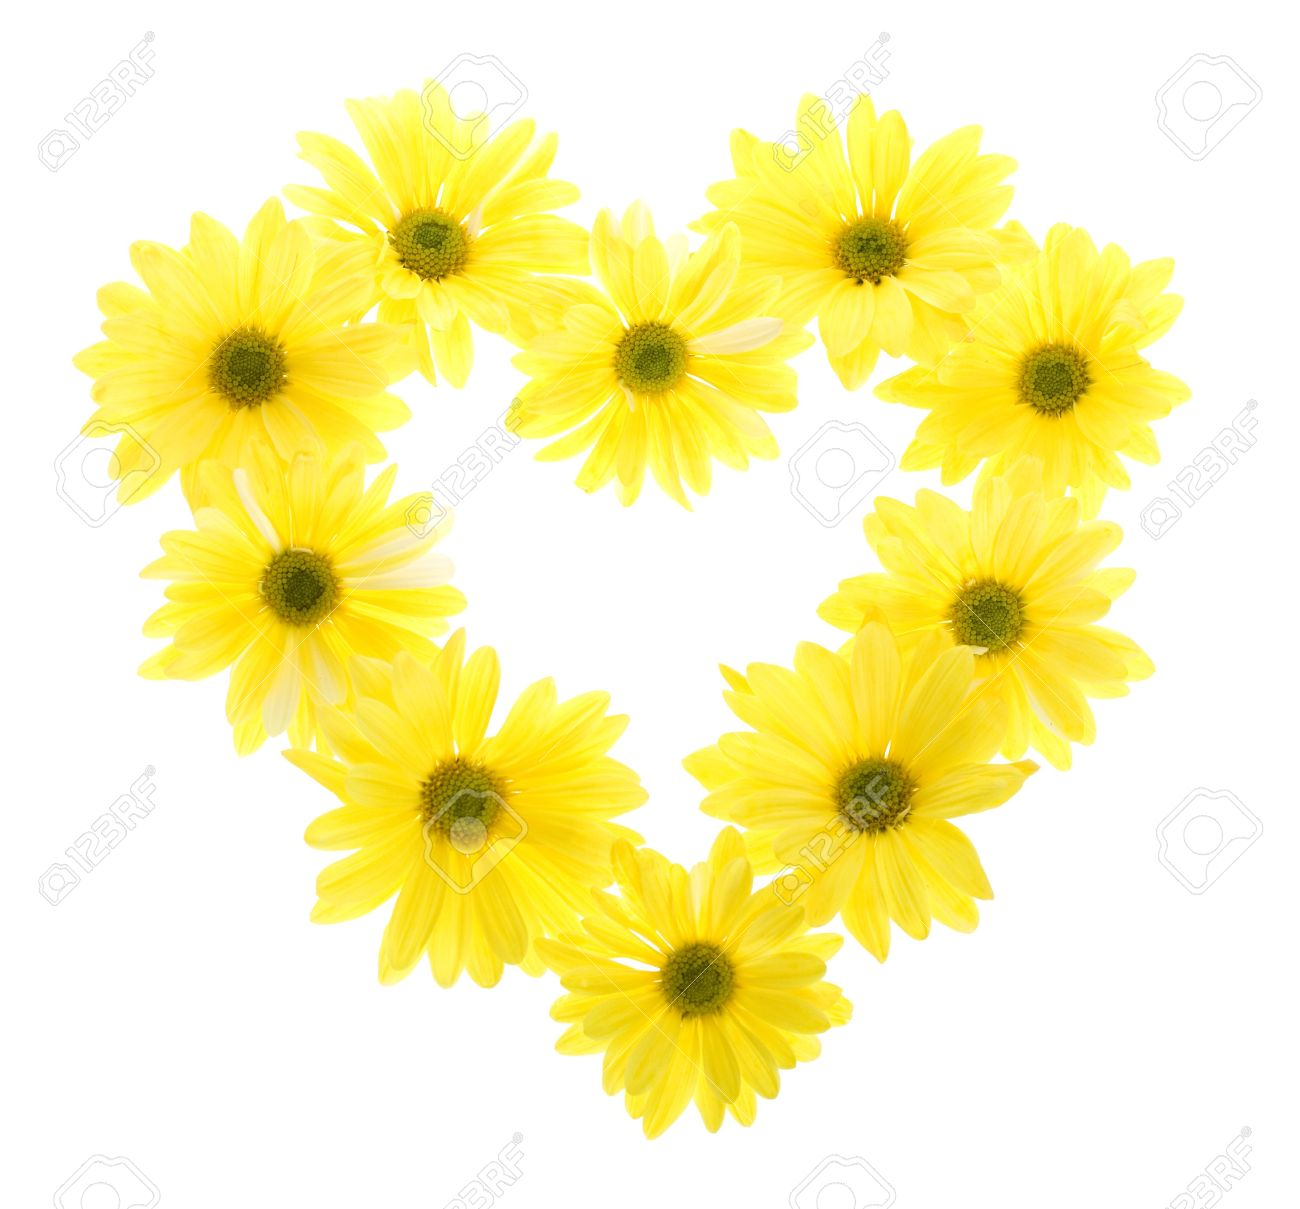 Ten yellow daisy flowers isolated on white white flowers tinted stock photo ten yellow daisy flowers isolated on white white flowers tinted yellow arranged in the shape of a heart no stem mightylinksfo